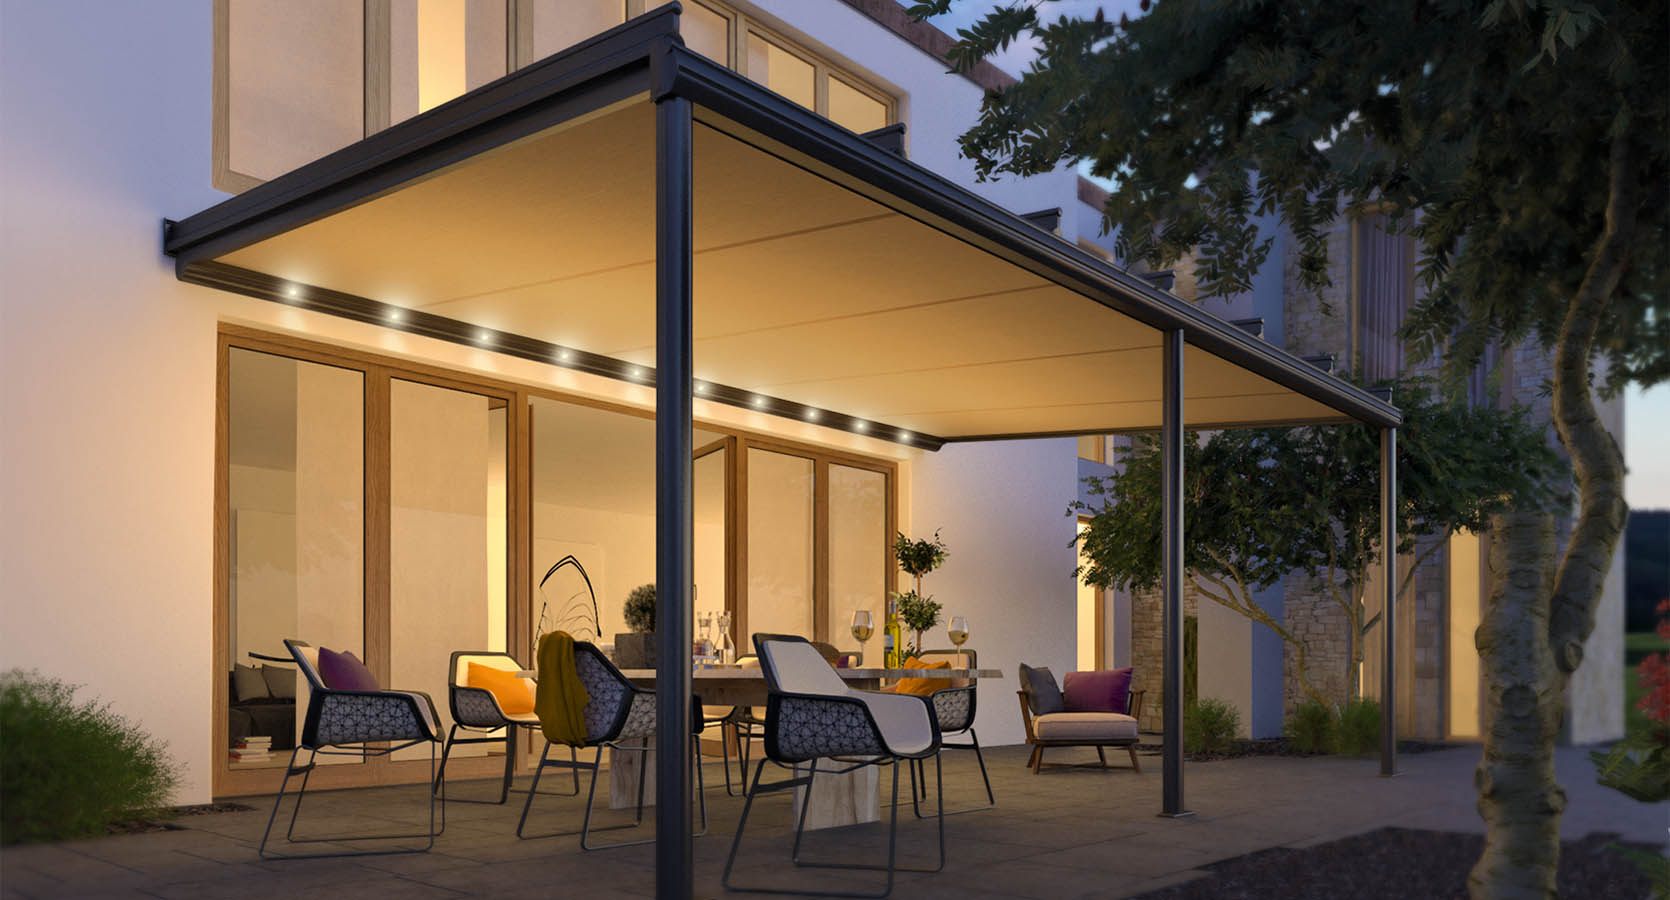 Conservatory Awnings Are Perfect For Heat Reduction In